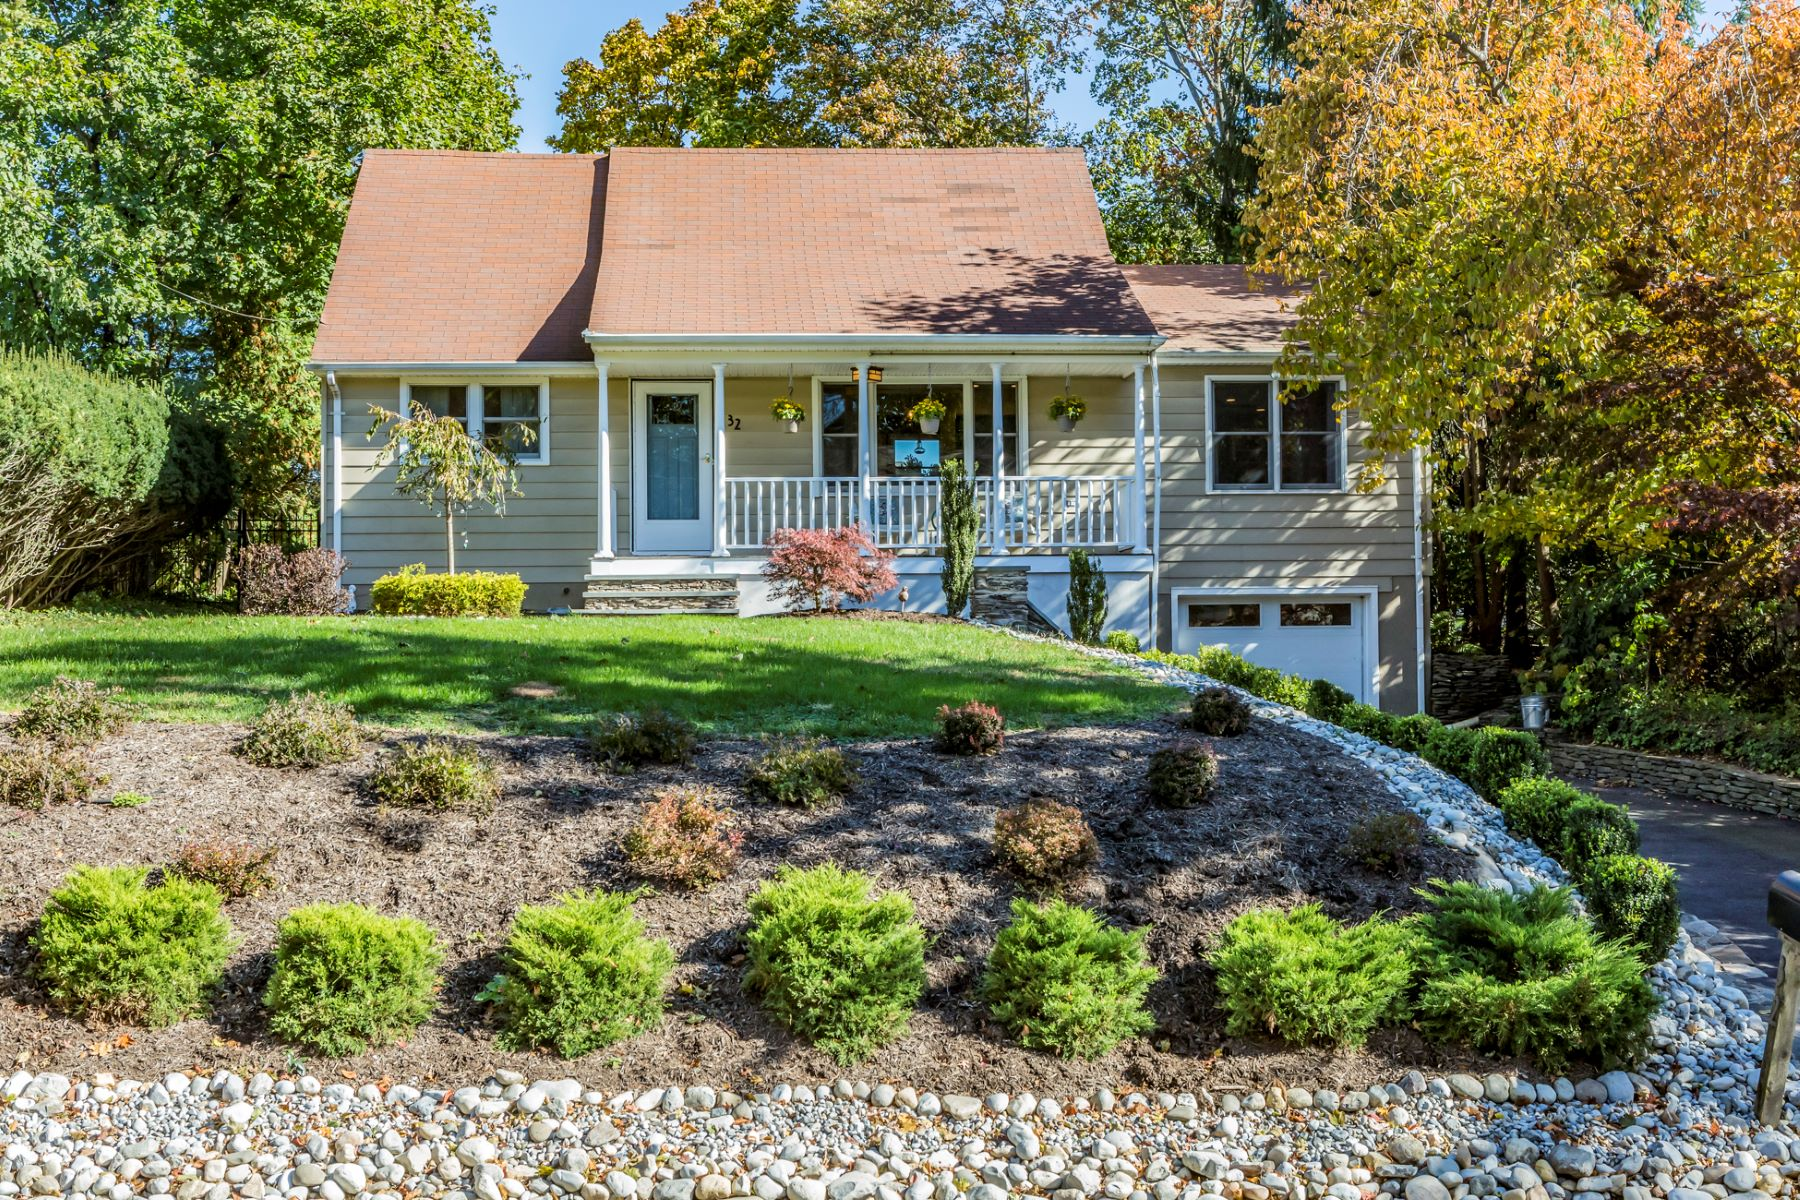 Single Family Home for Sale at Cape Celebrates the Joys of Small Town Living 32 Academy Street, Princeton, New Jersey 08540 United StatesMunicipality: South Brunswick Township